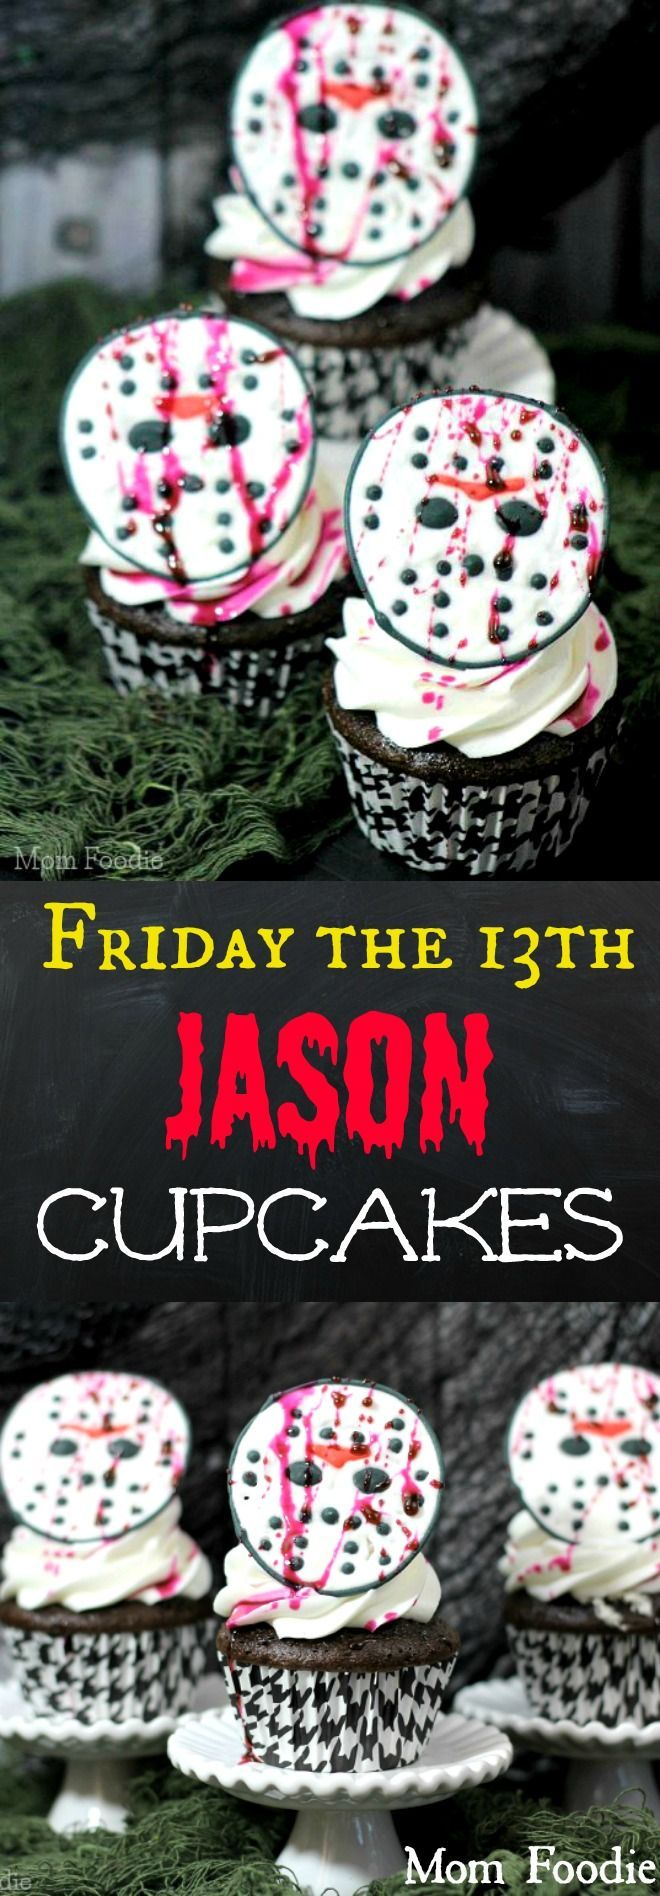 Friday the 13th Jason Cupcakes - DIY Hallowee…